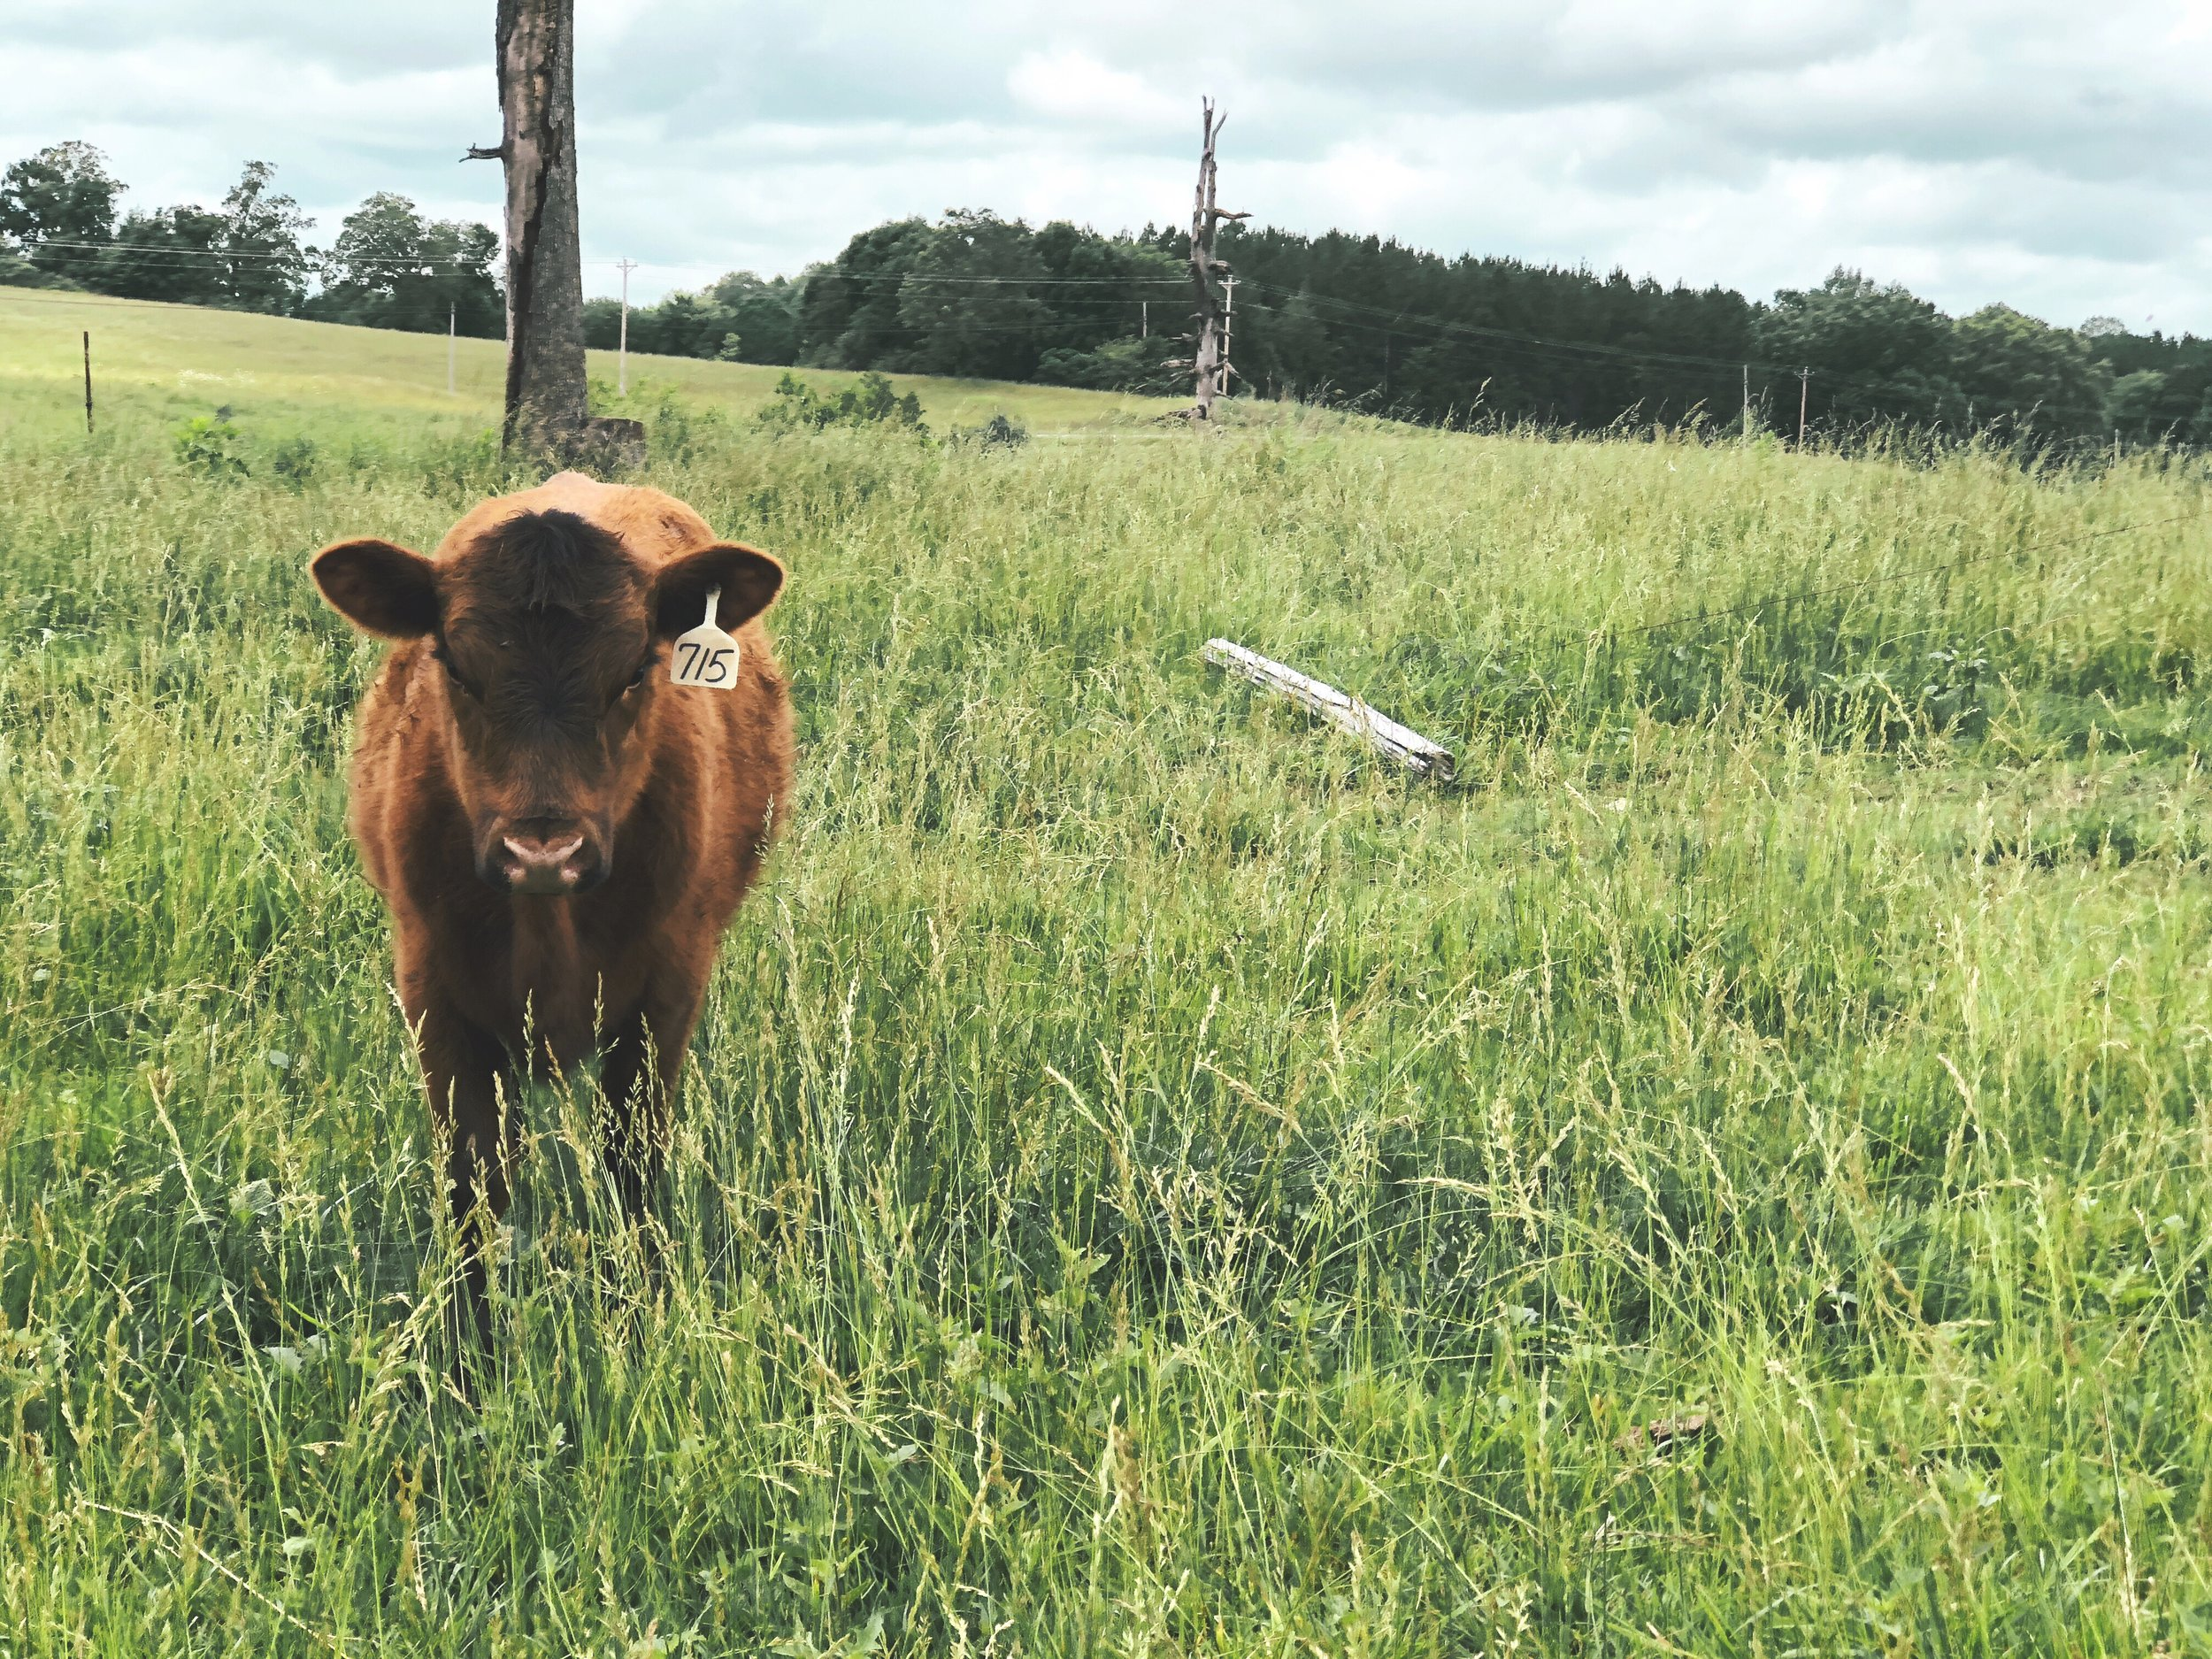 Ever wonder why Grass fed beef is so much more expensive than regular beef in mainstream stores?  - it takes a year to two longer to get them to market size compared to a grain fed cow. A cheaper cow raised in less time means more people will have access to meat while keeping prices as low as possible.